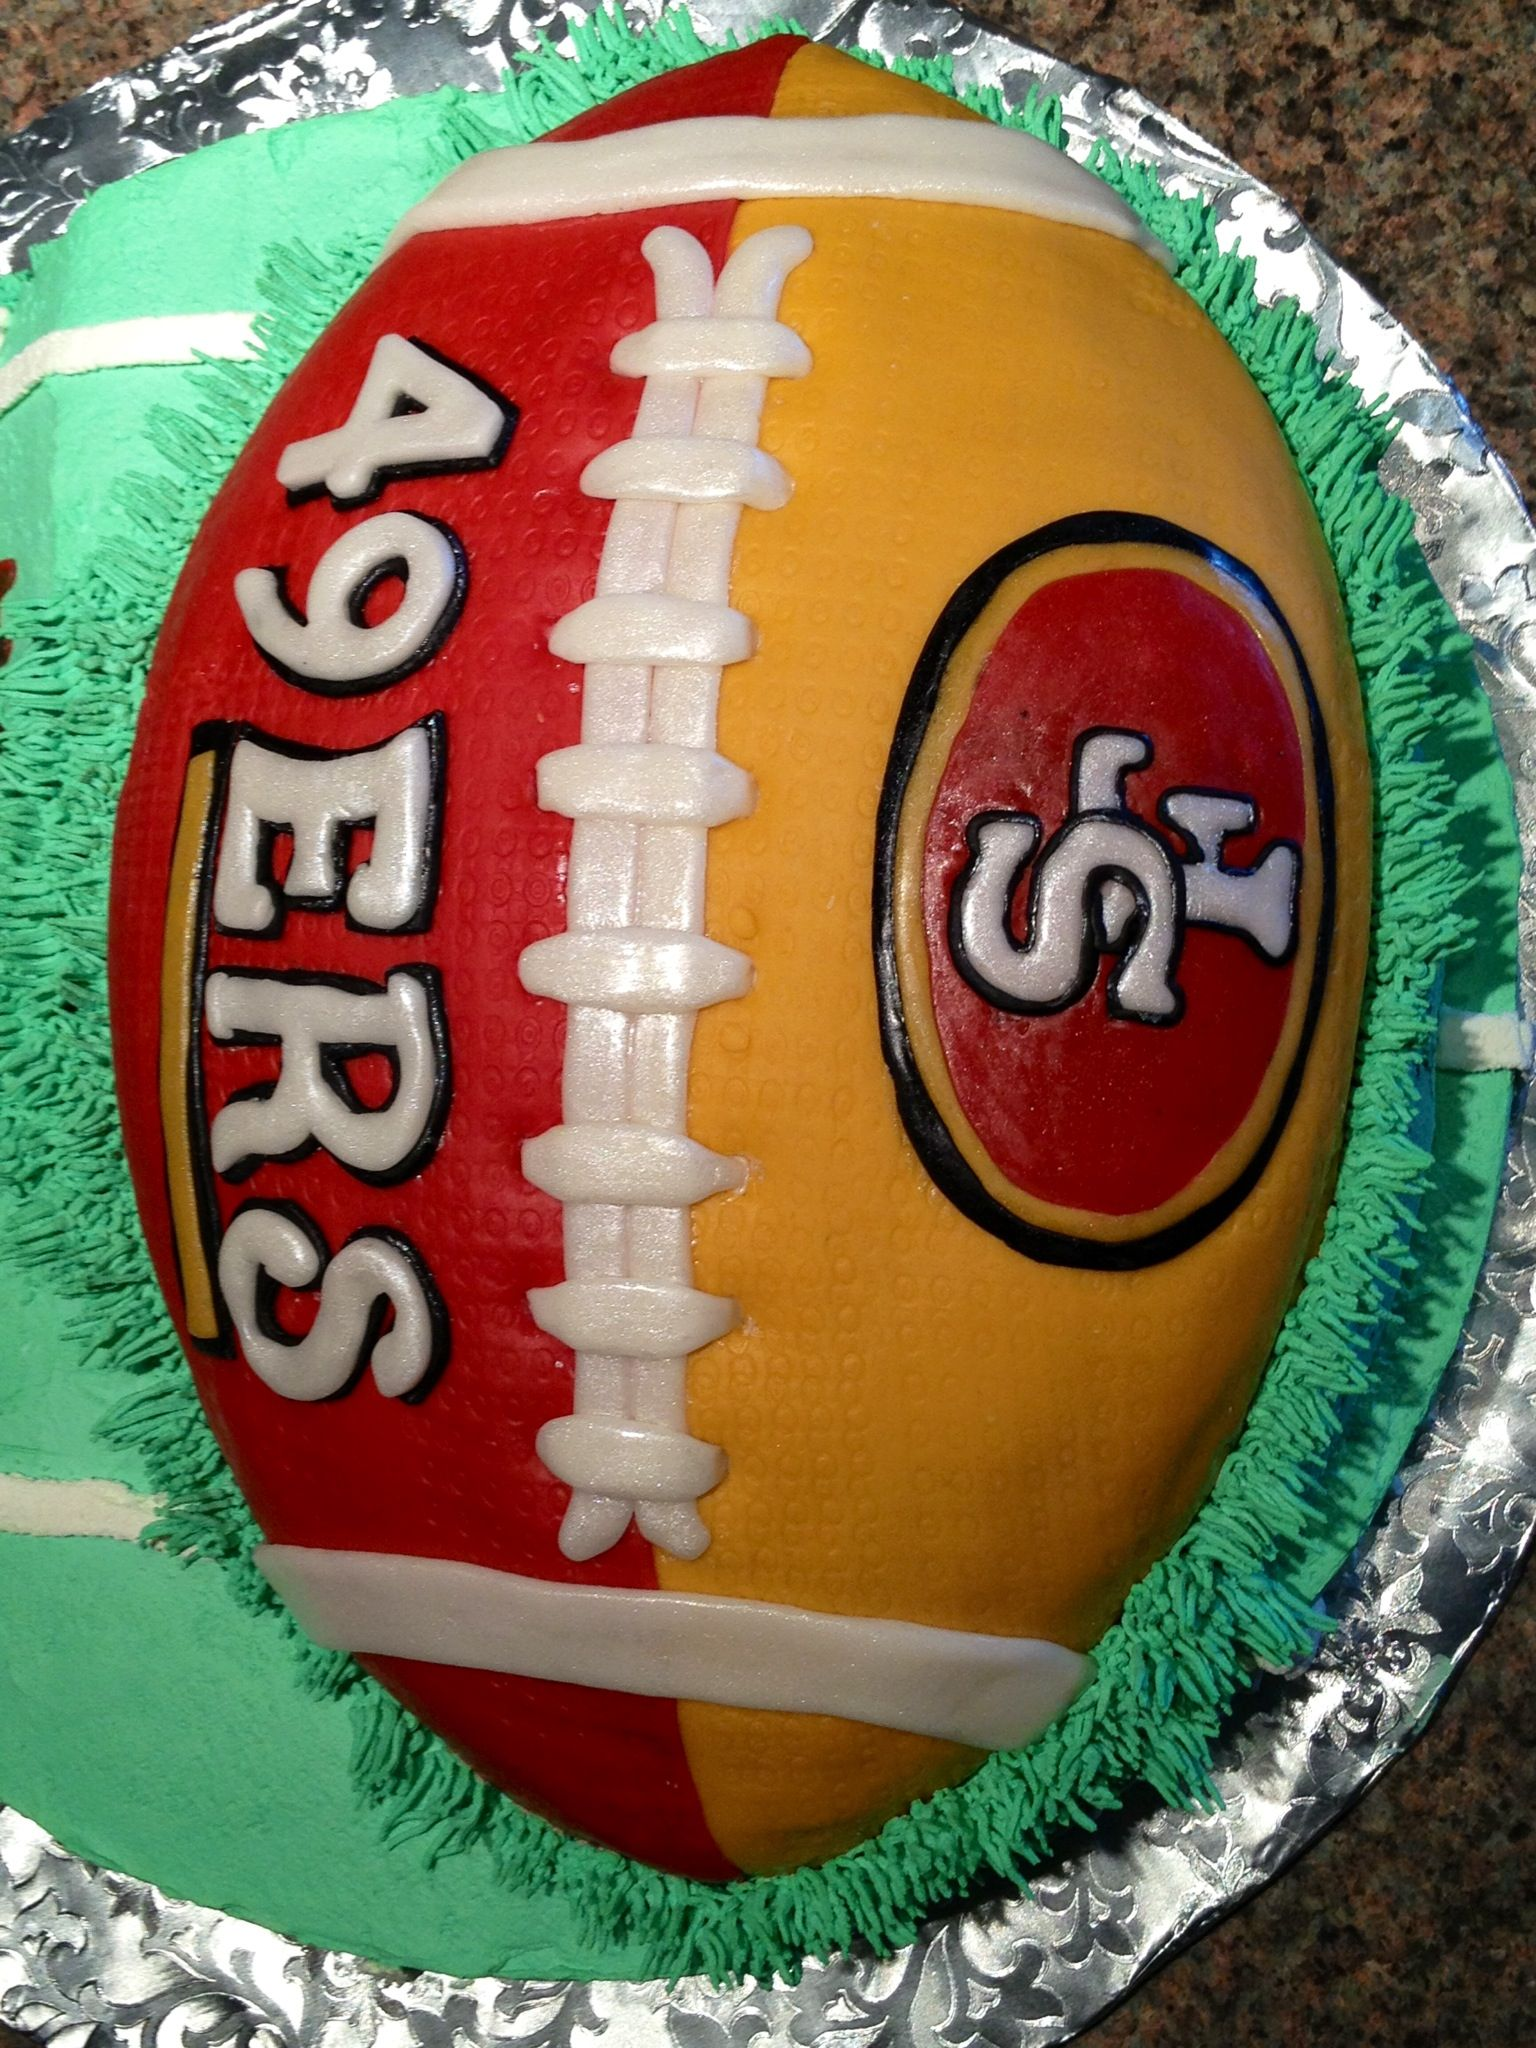 Pin By Araceli Aguirre On Father S Day Or Grooms Cake 49ers Cake Superbowl Cake Nfl Cake